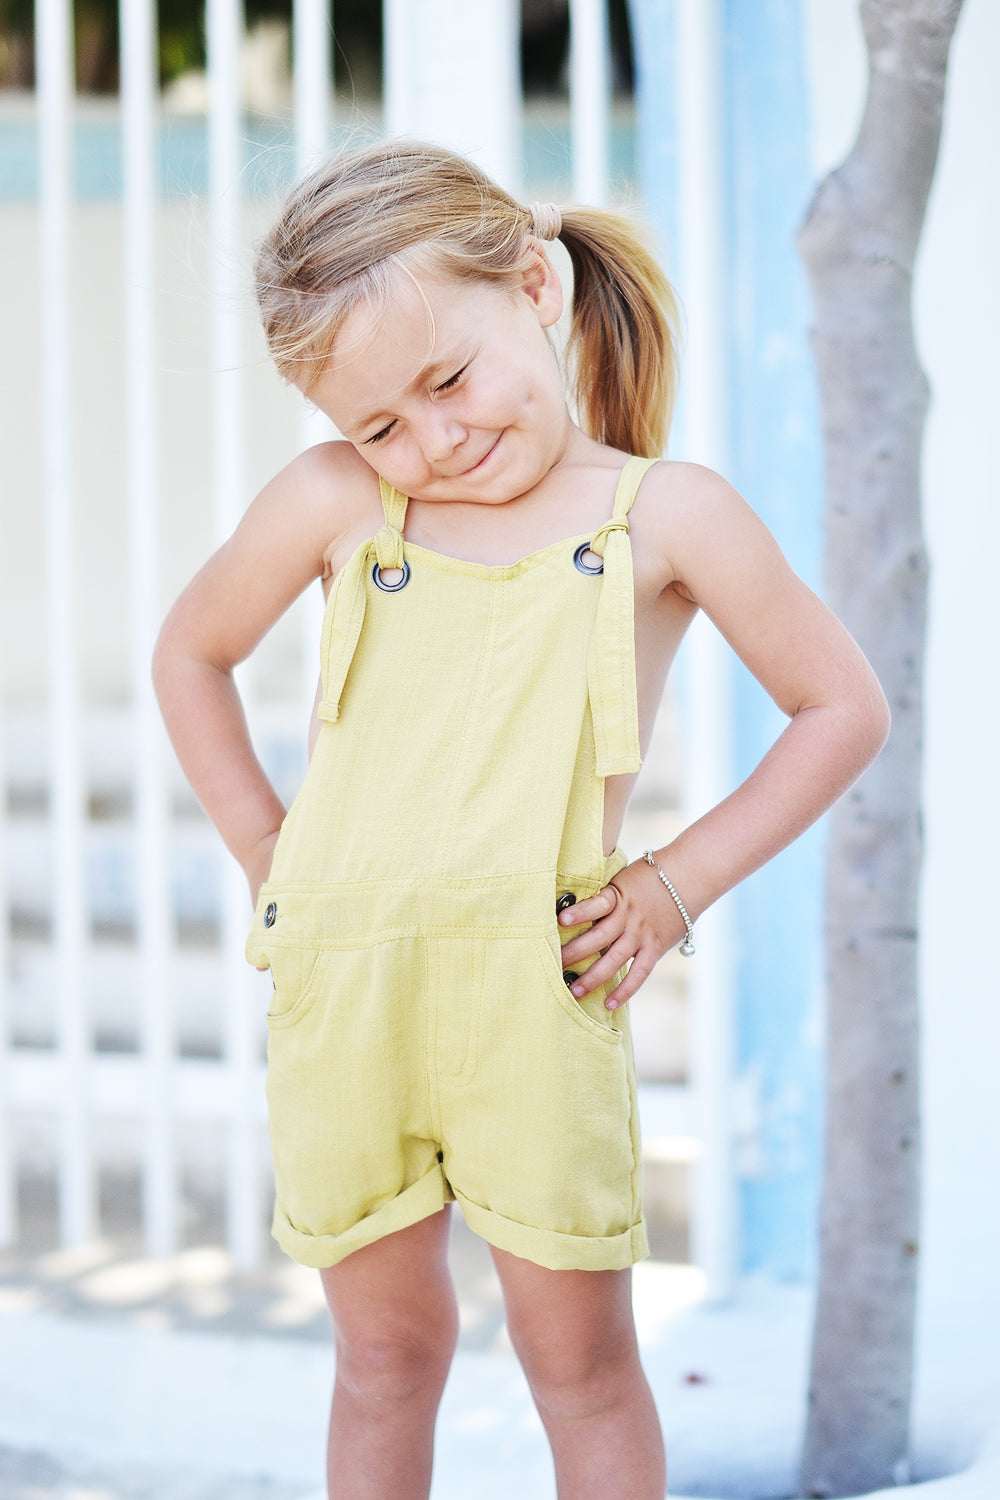 EMILY MINI OVERALLS YELLOW - OLAS SUPPLY CO.